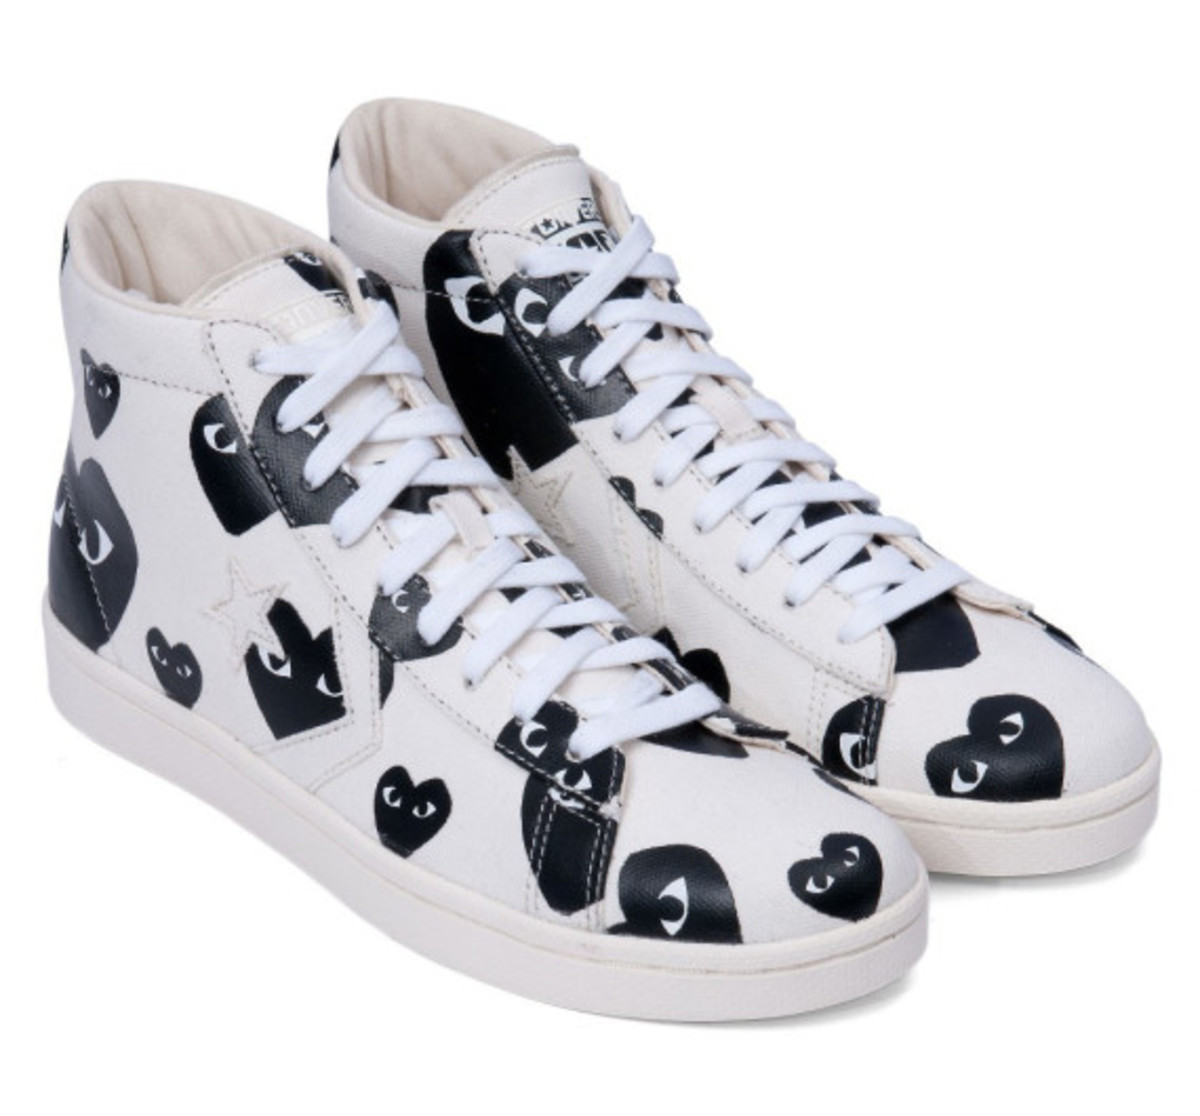 comme-des-garcons-play-converse-pro-leather-collection-03